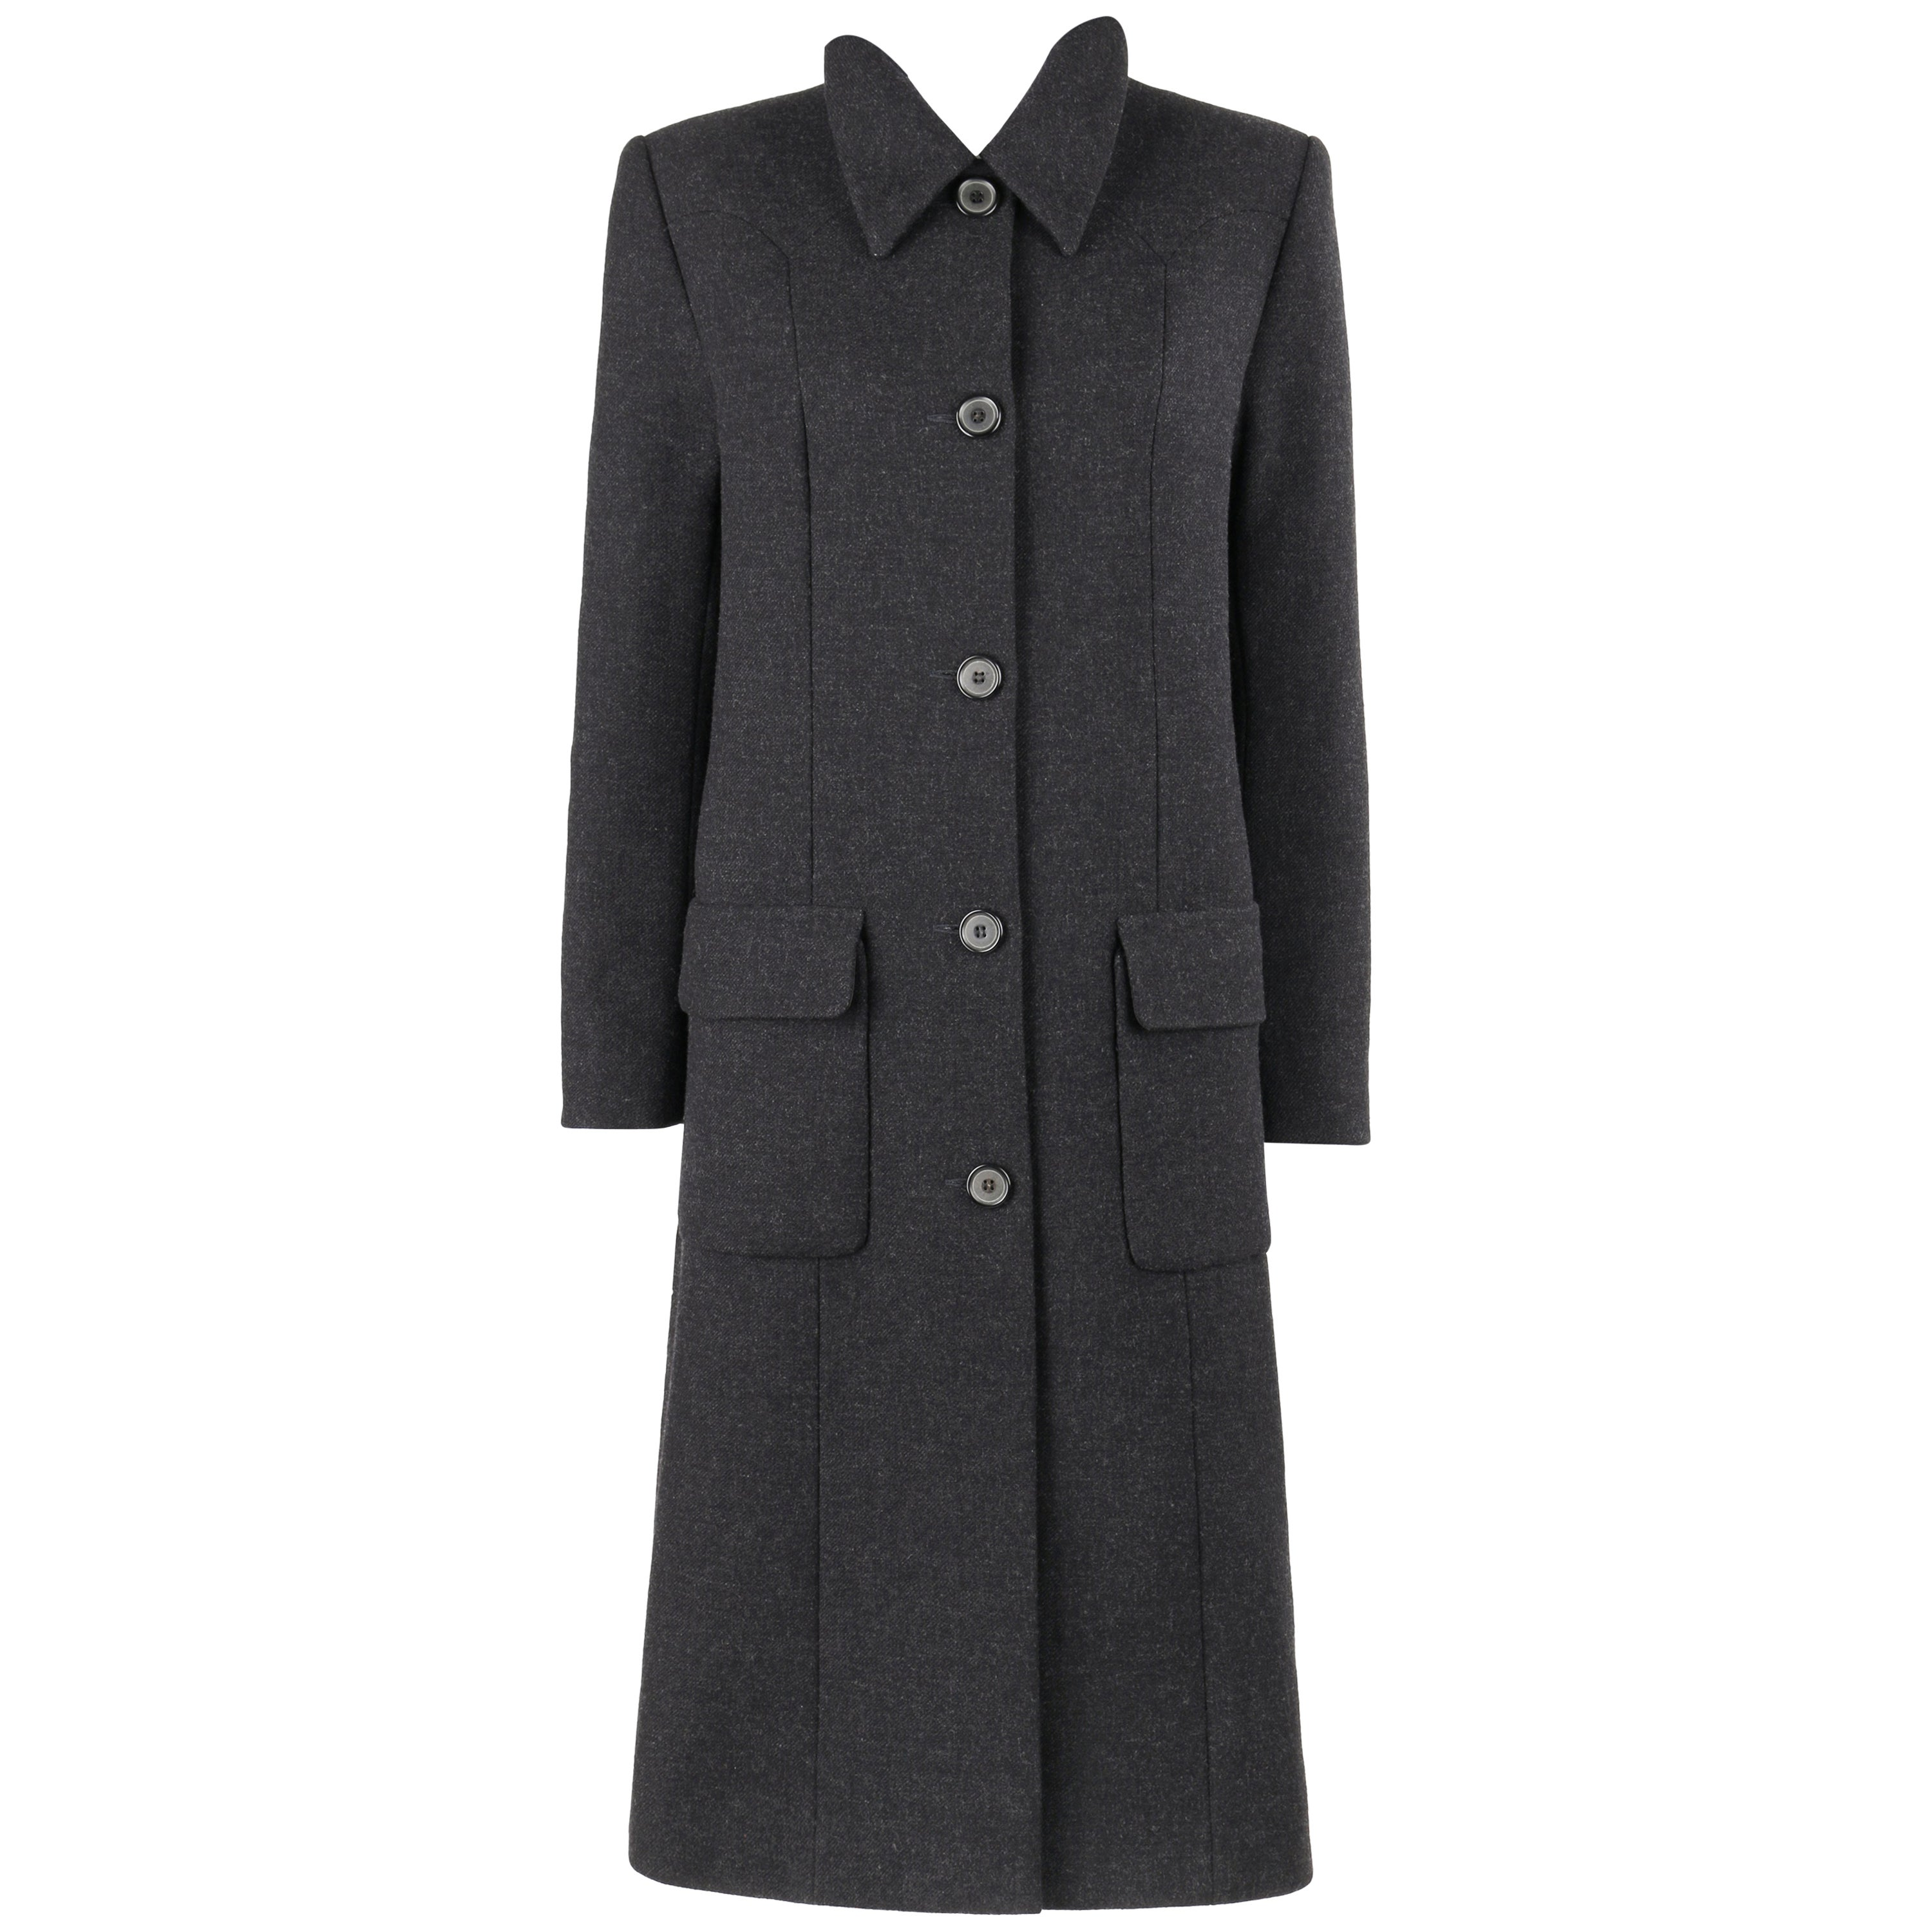 GIVENCHY Couture A/W 1998 ALEXANDER McQUEEN Charcoal Gray Wool Coat Overcoat